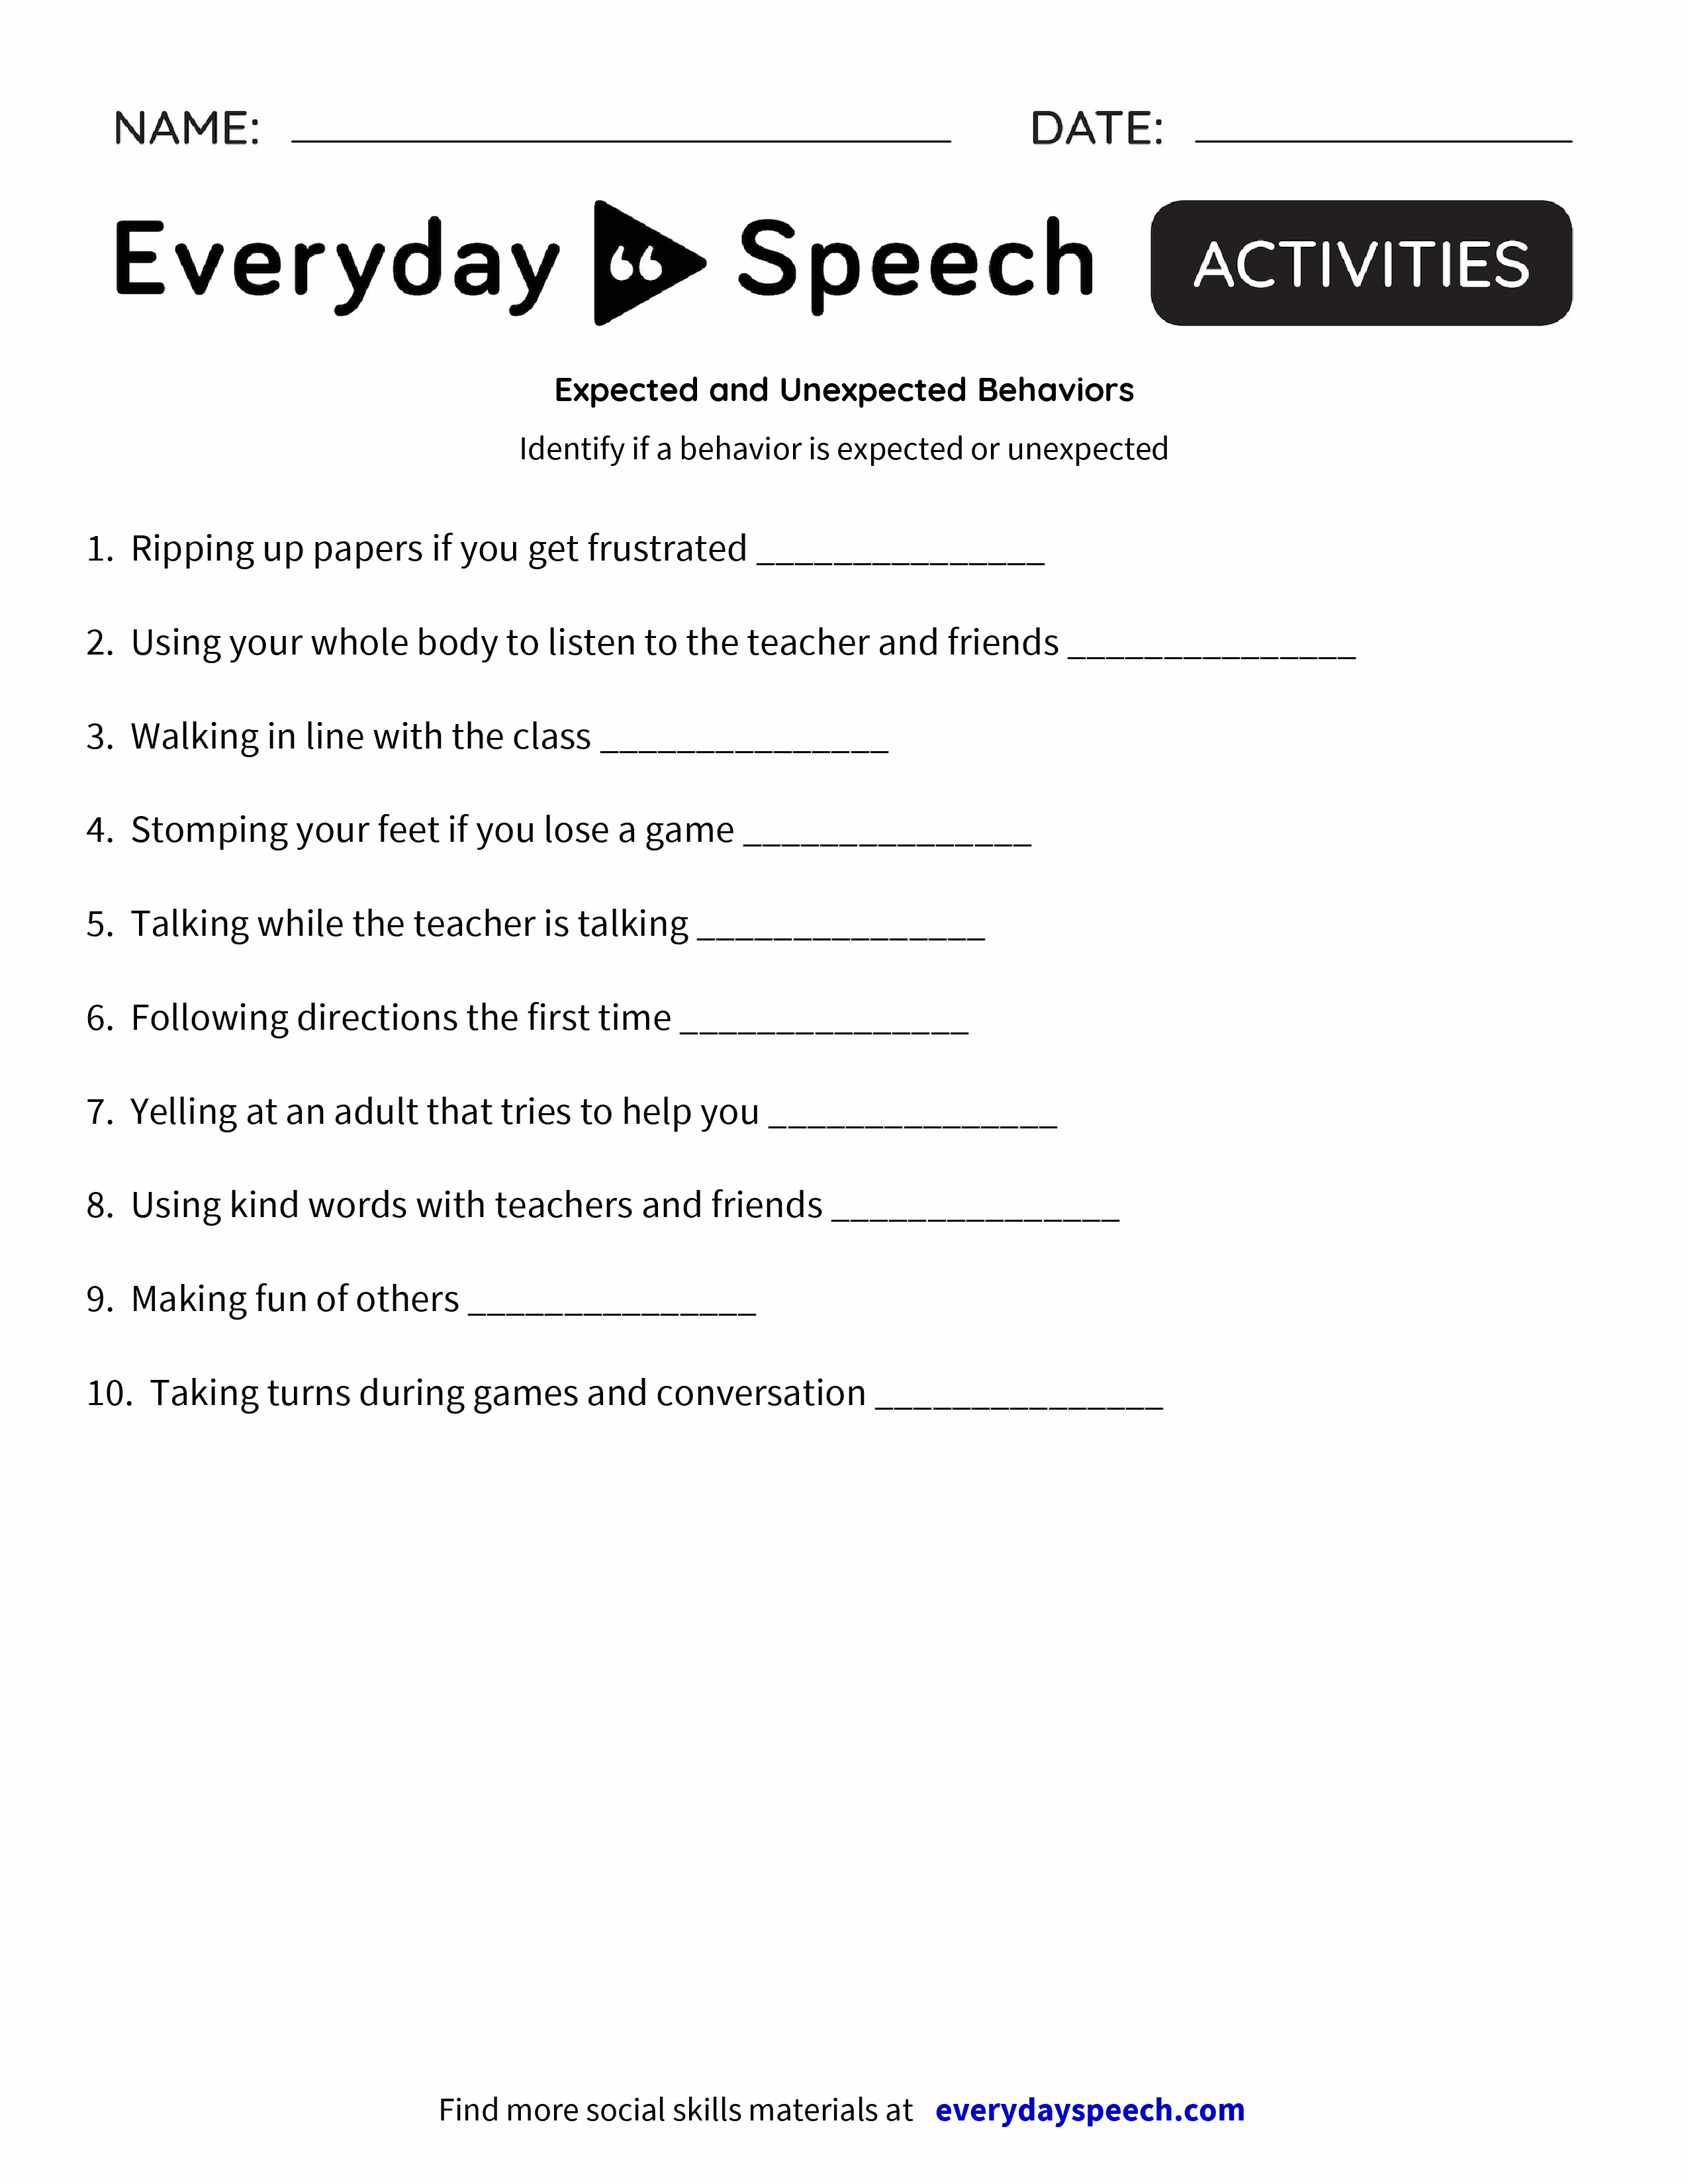 Expected and Unexpected Behaviors Everyday Speech Everyday Speech – Behavior Worksheets